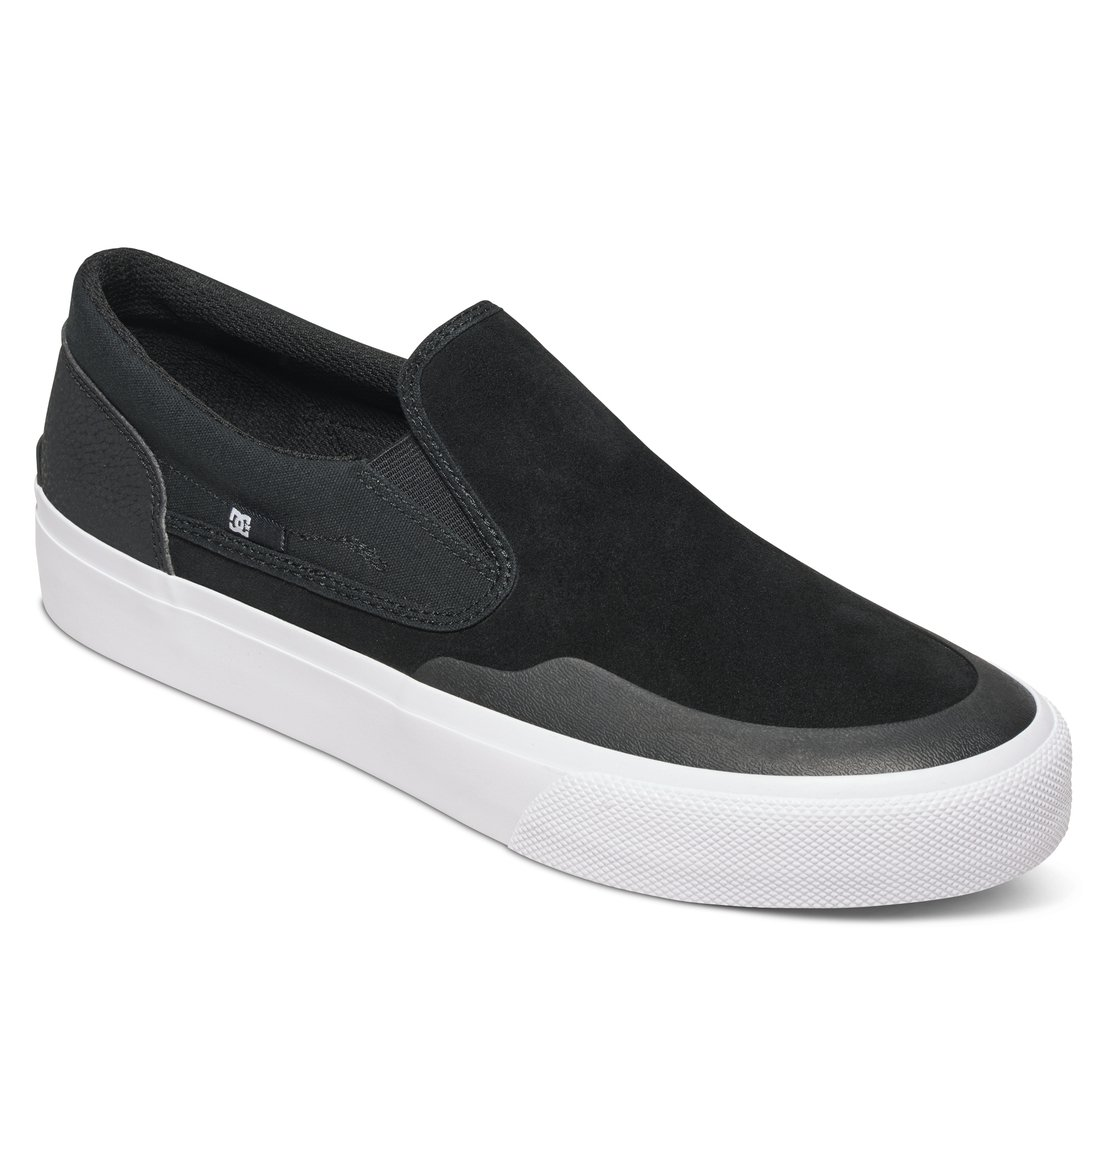 dc shoes s trase s rt slip on skate shoes adys300357